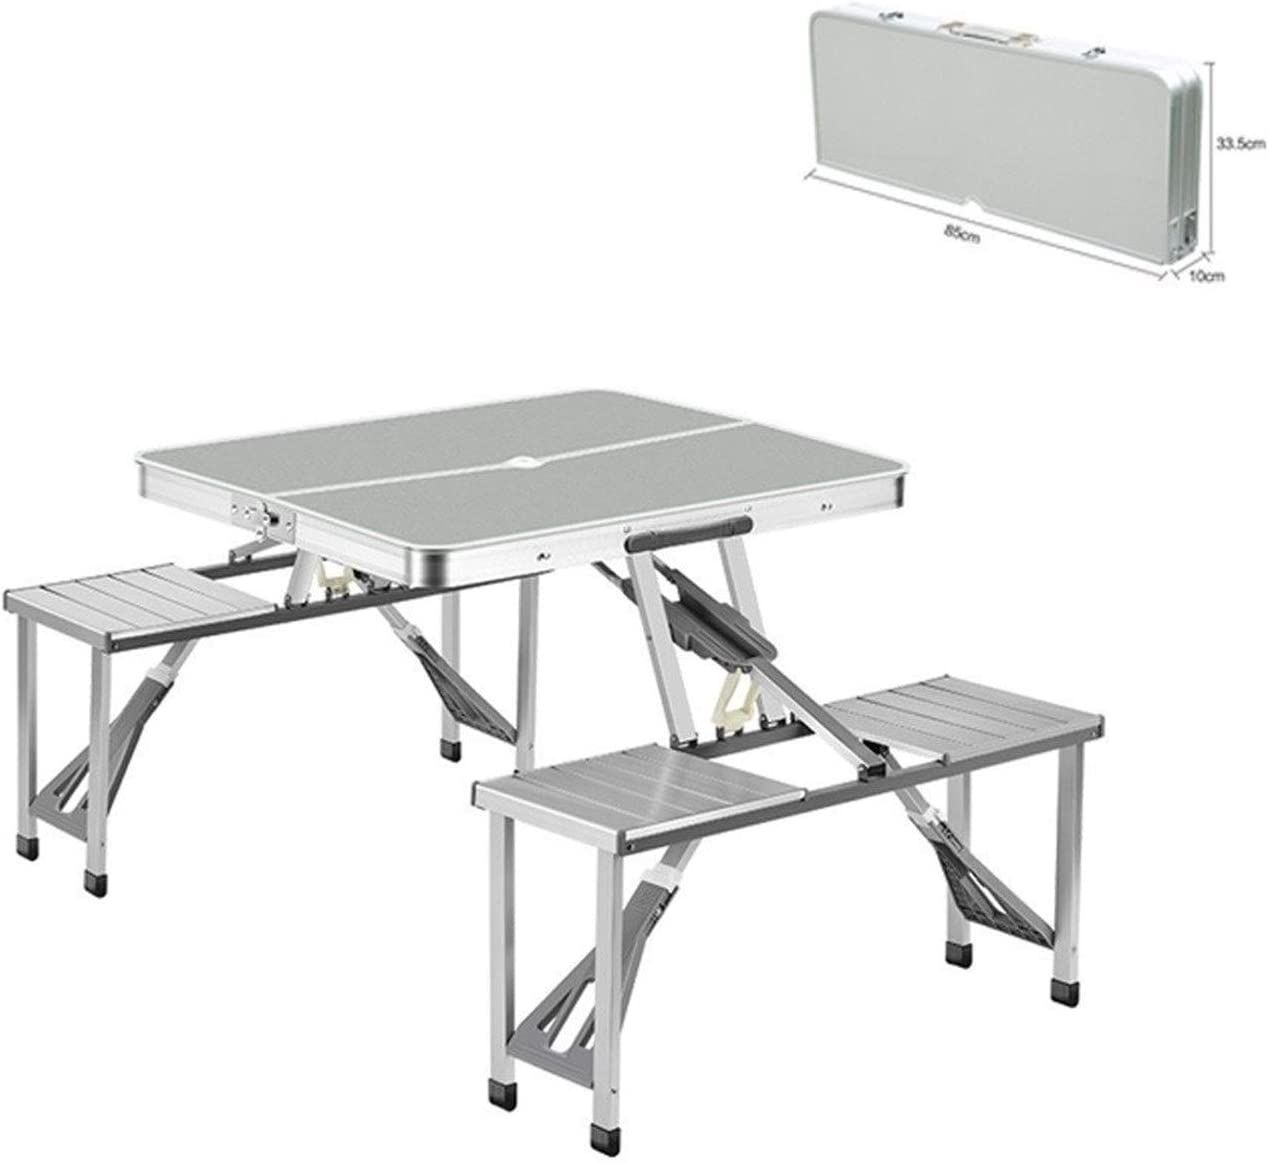 BDBT ! Super beauty product restock quality top! Folding Tables Chairs Lightweight Picnic Portable Safety and trust